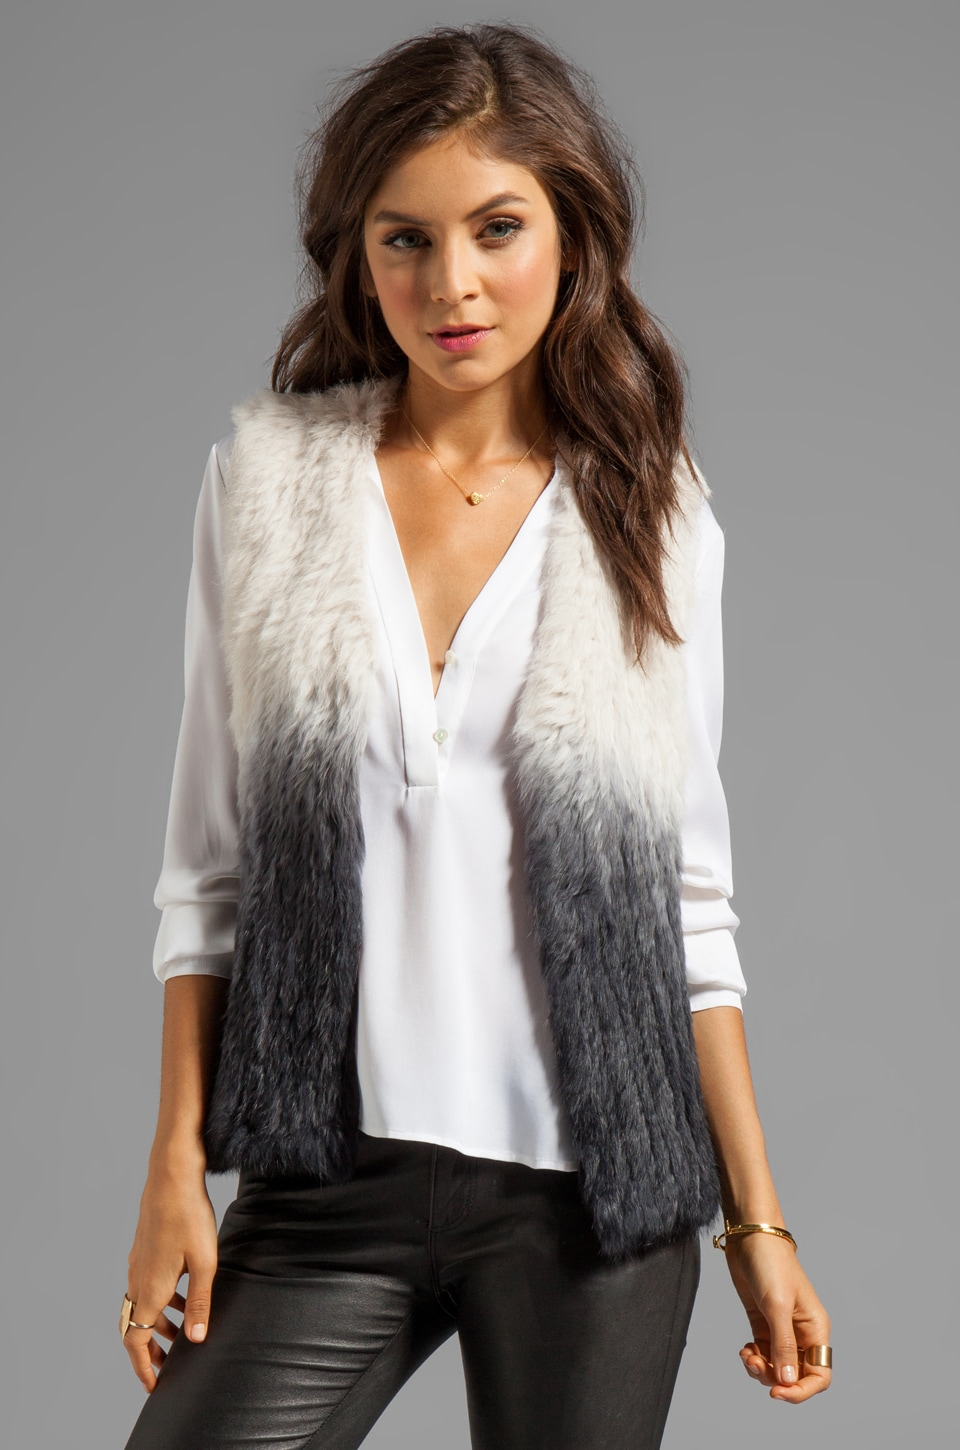 Wish Transcend Fur Vest in Transcend